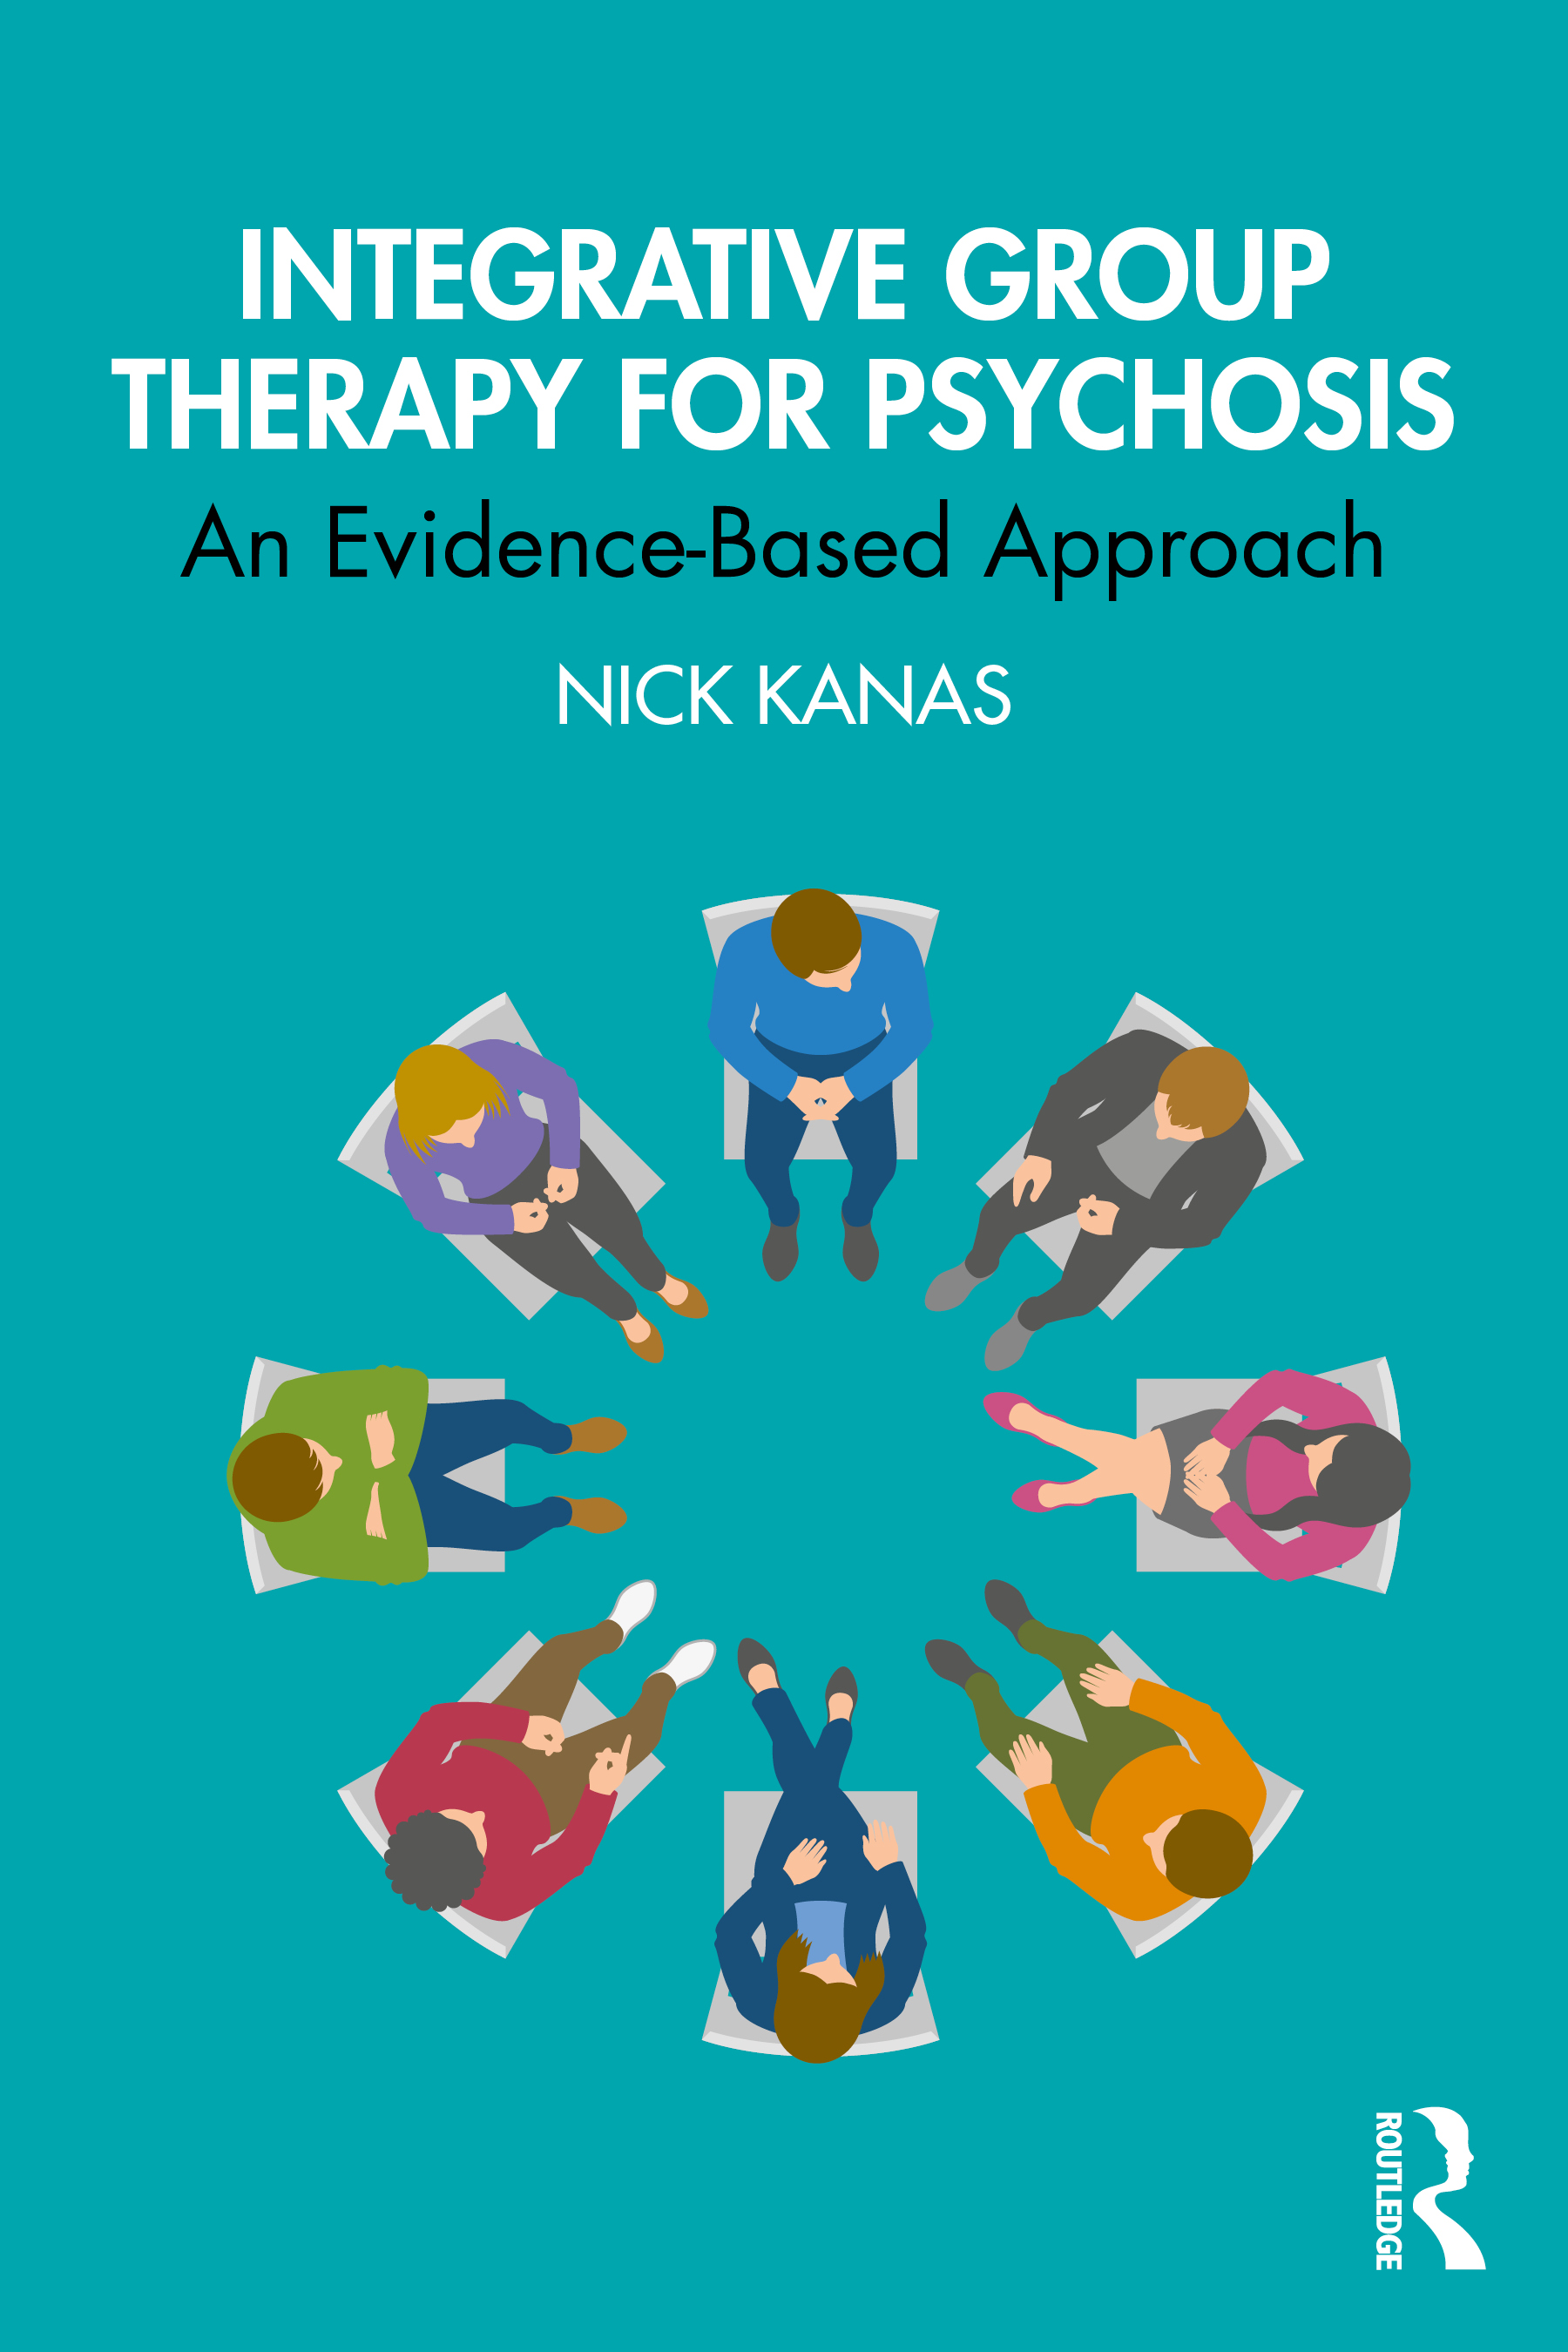 Integrative Group Therapy for Psychosis: An Evidence-Based Approach book cover